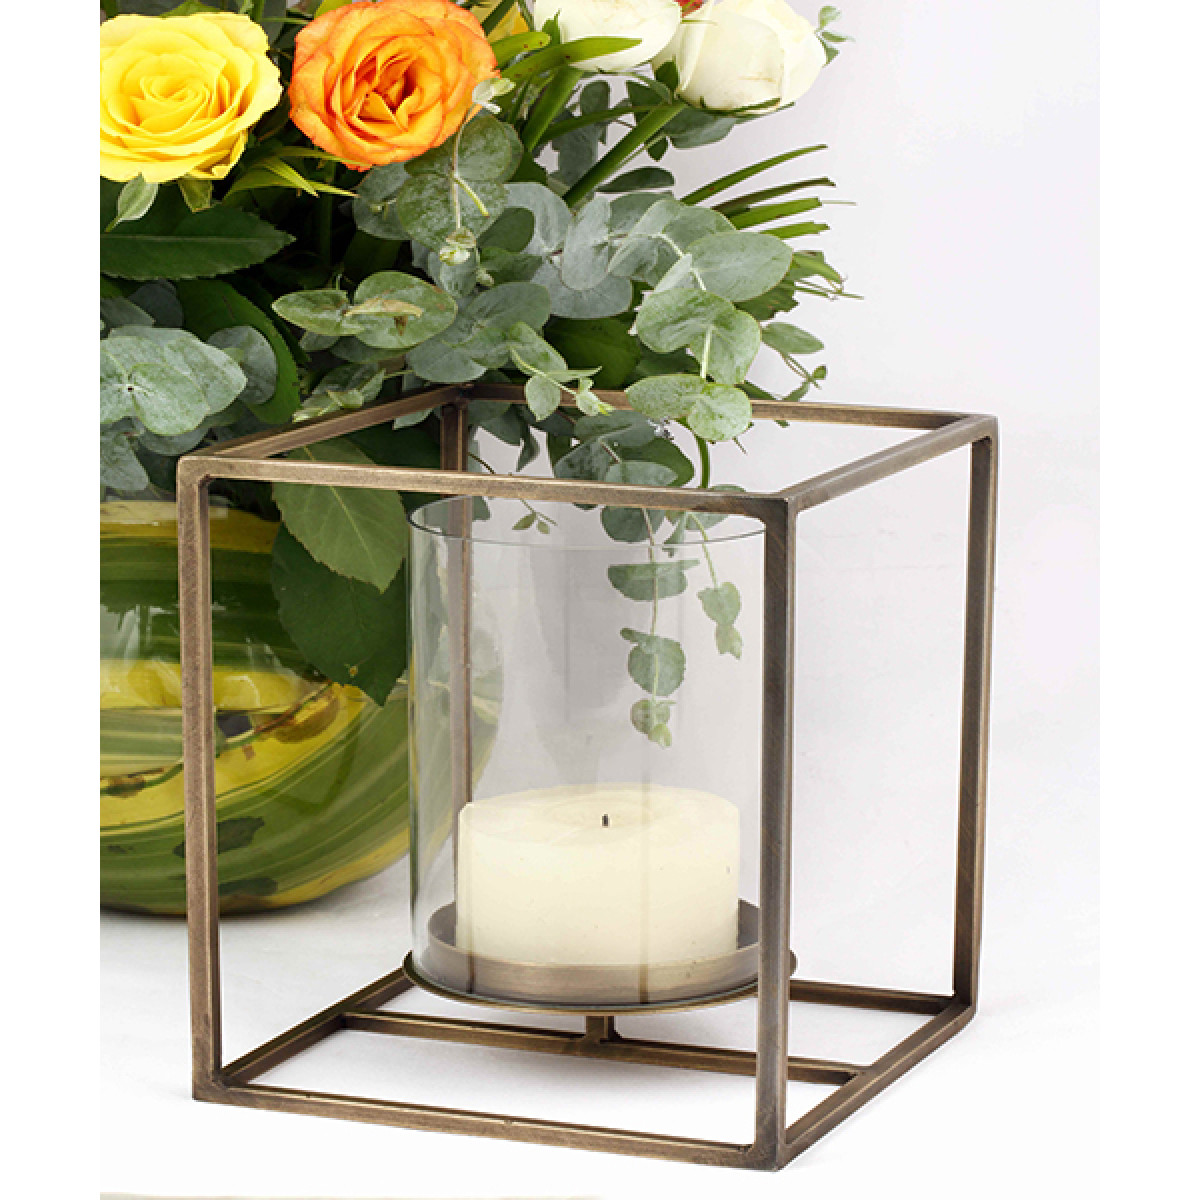 Cuboid_Candleholder:_Small--THE LOHASMITH-814